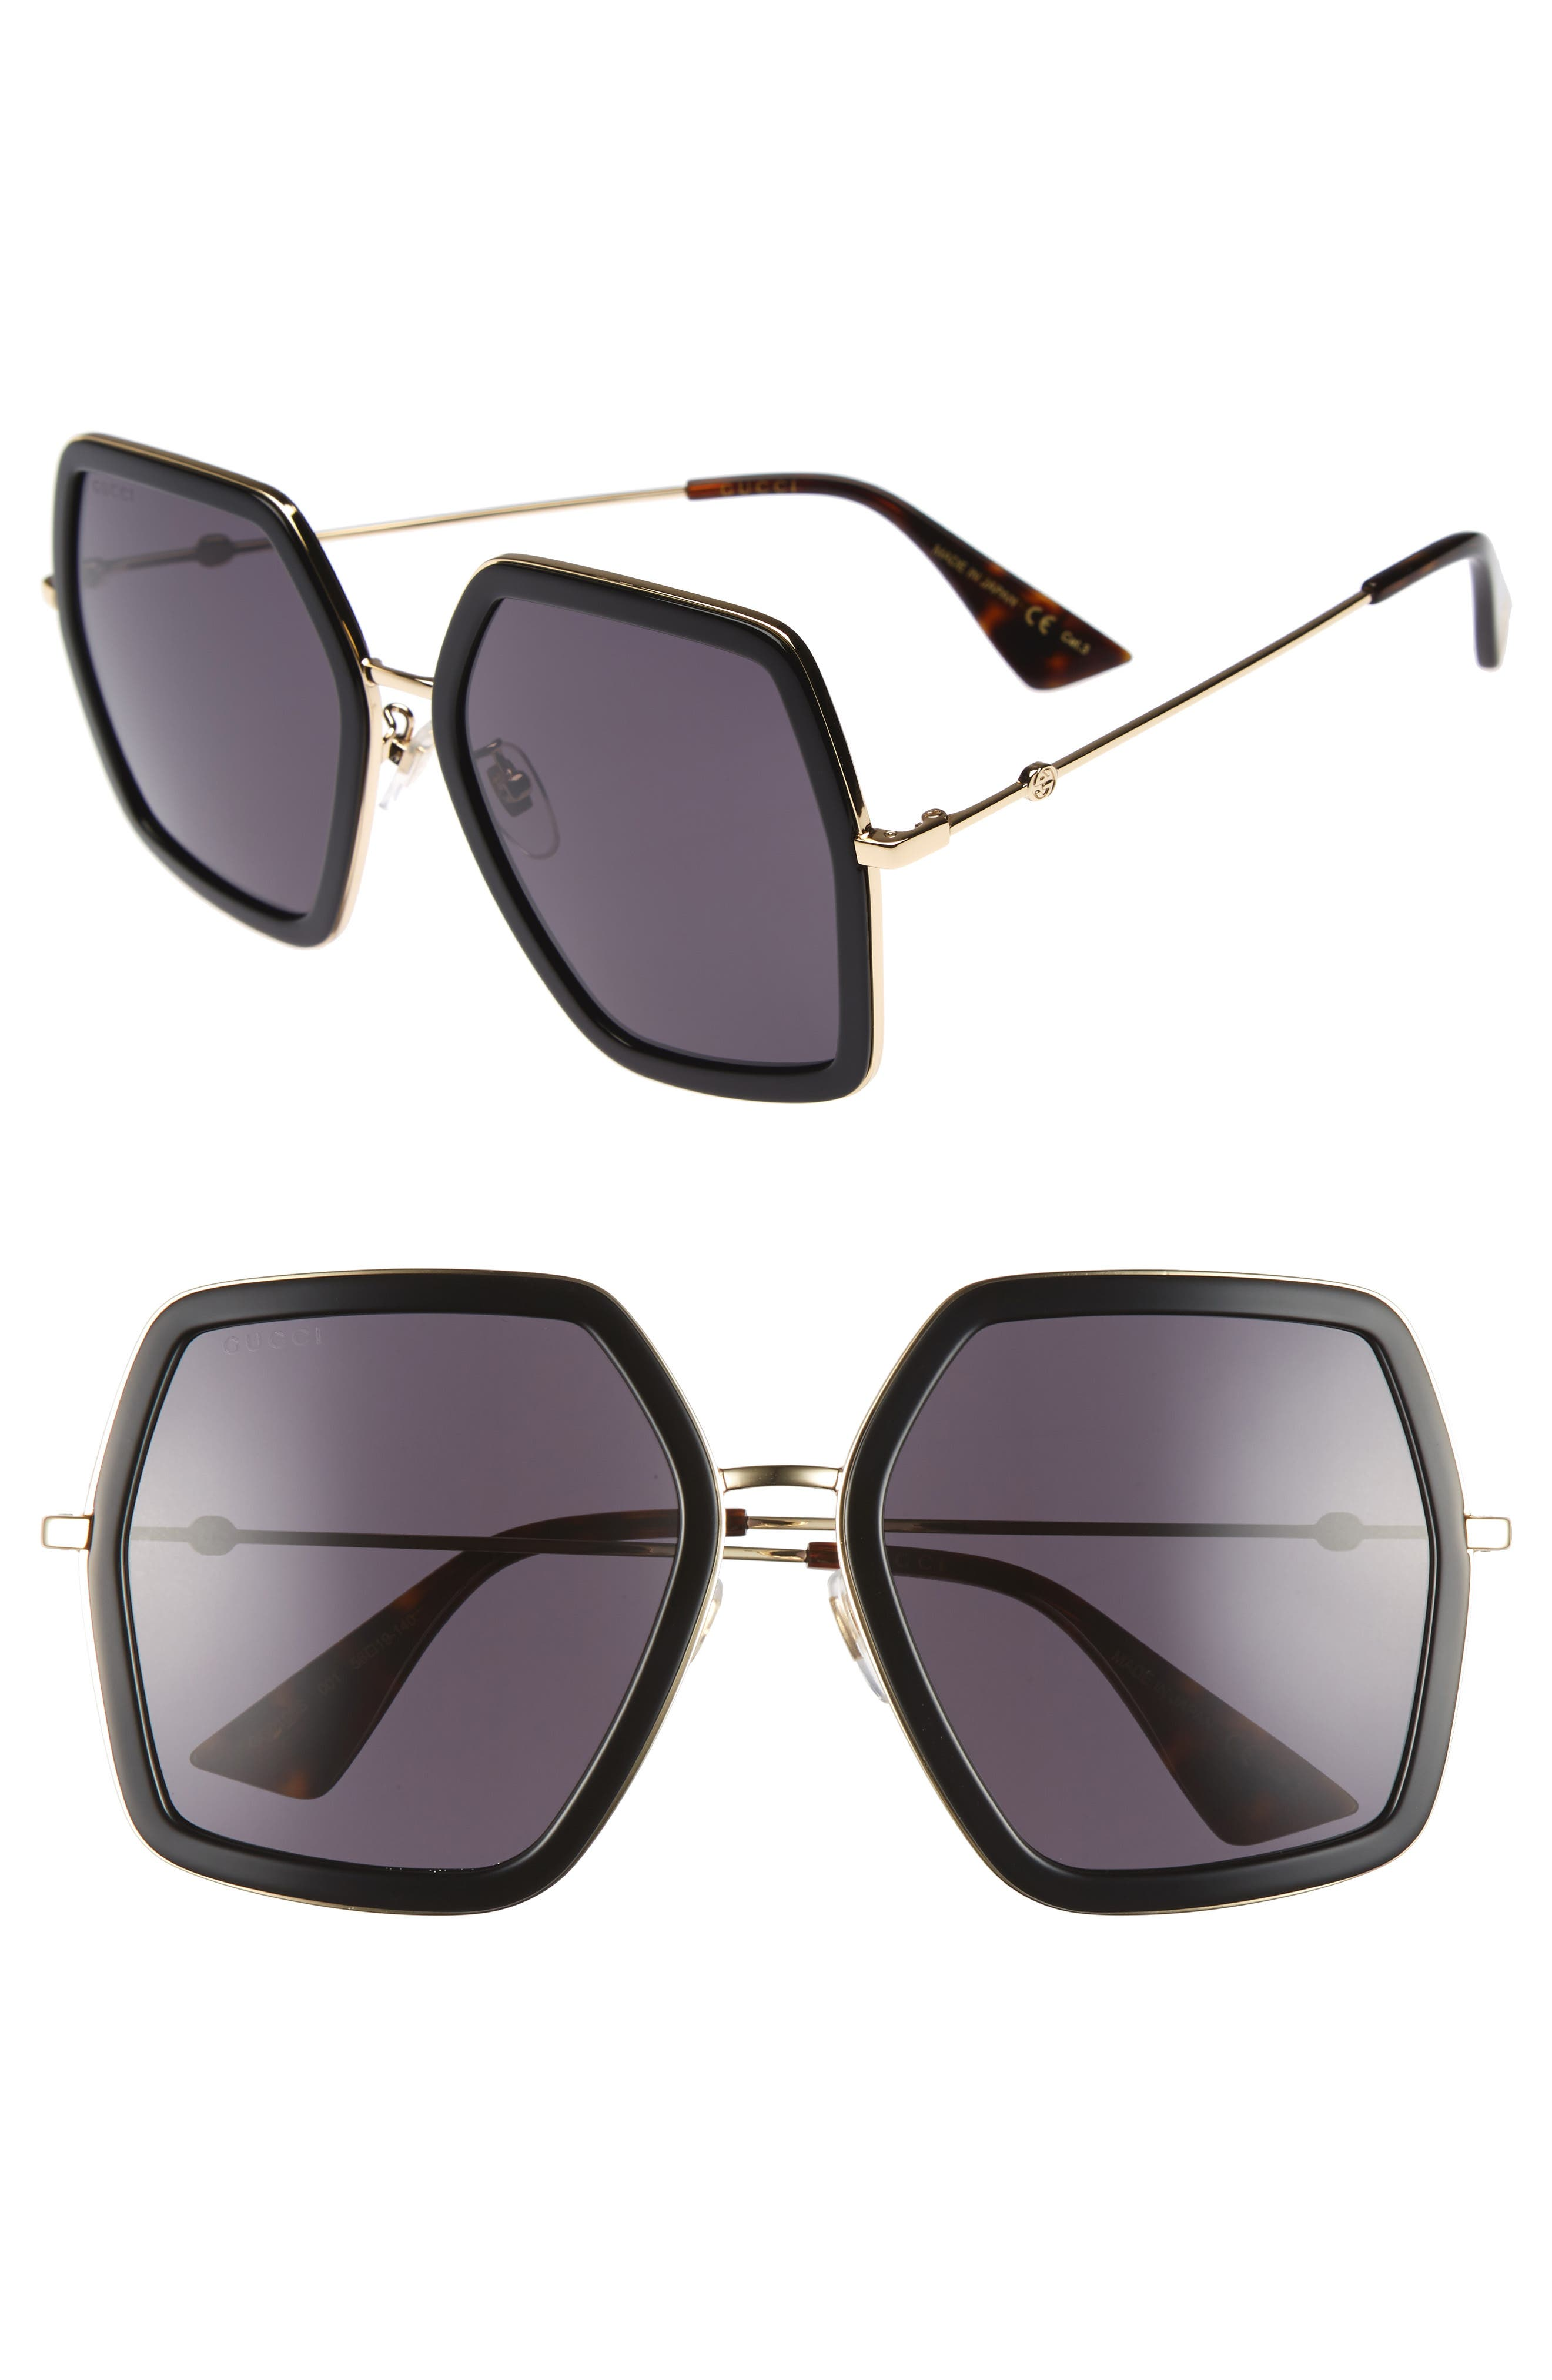 Gucci 5m Sunglasses -